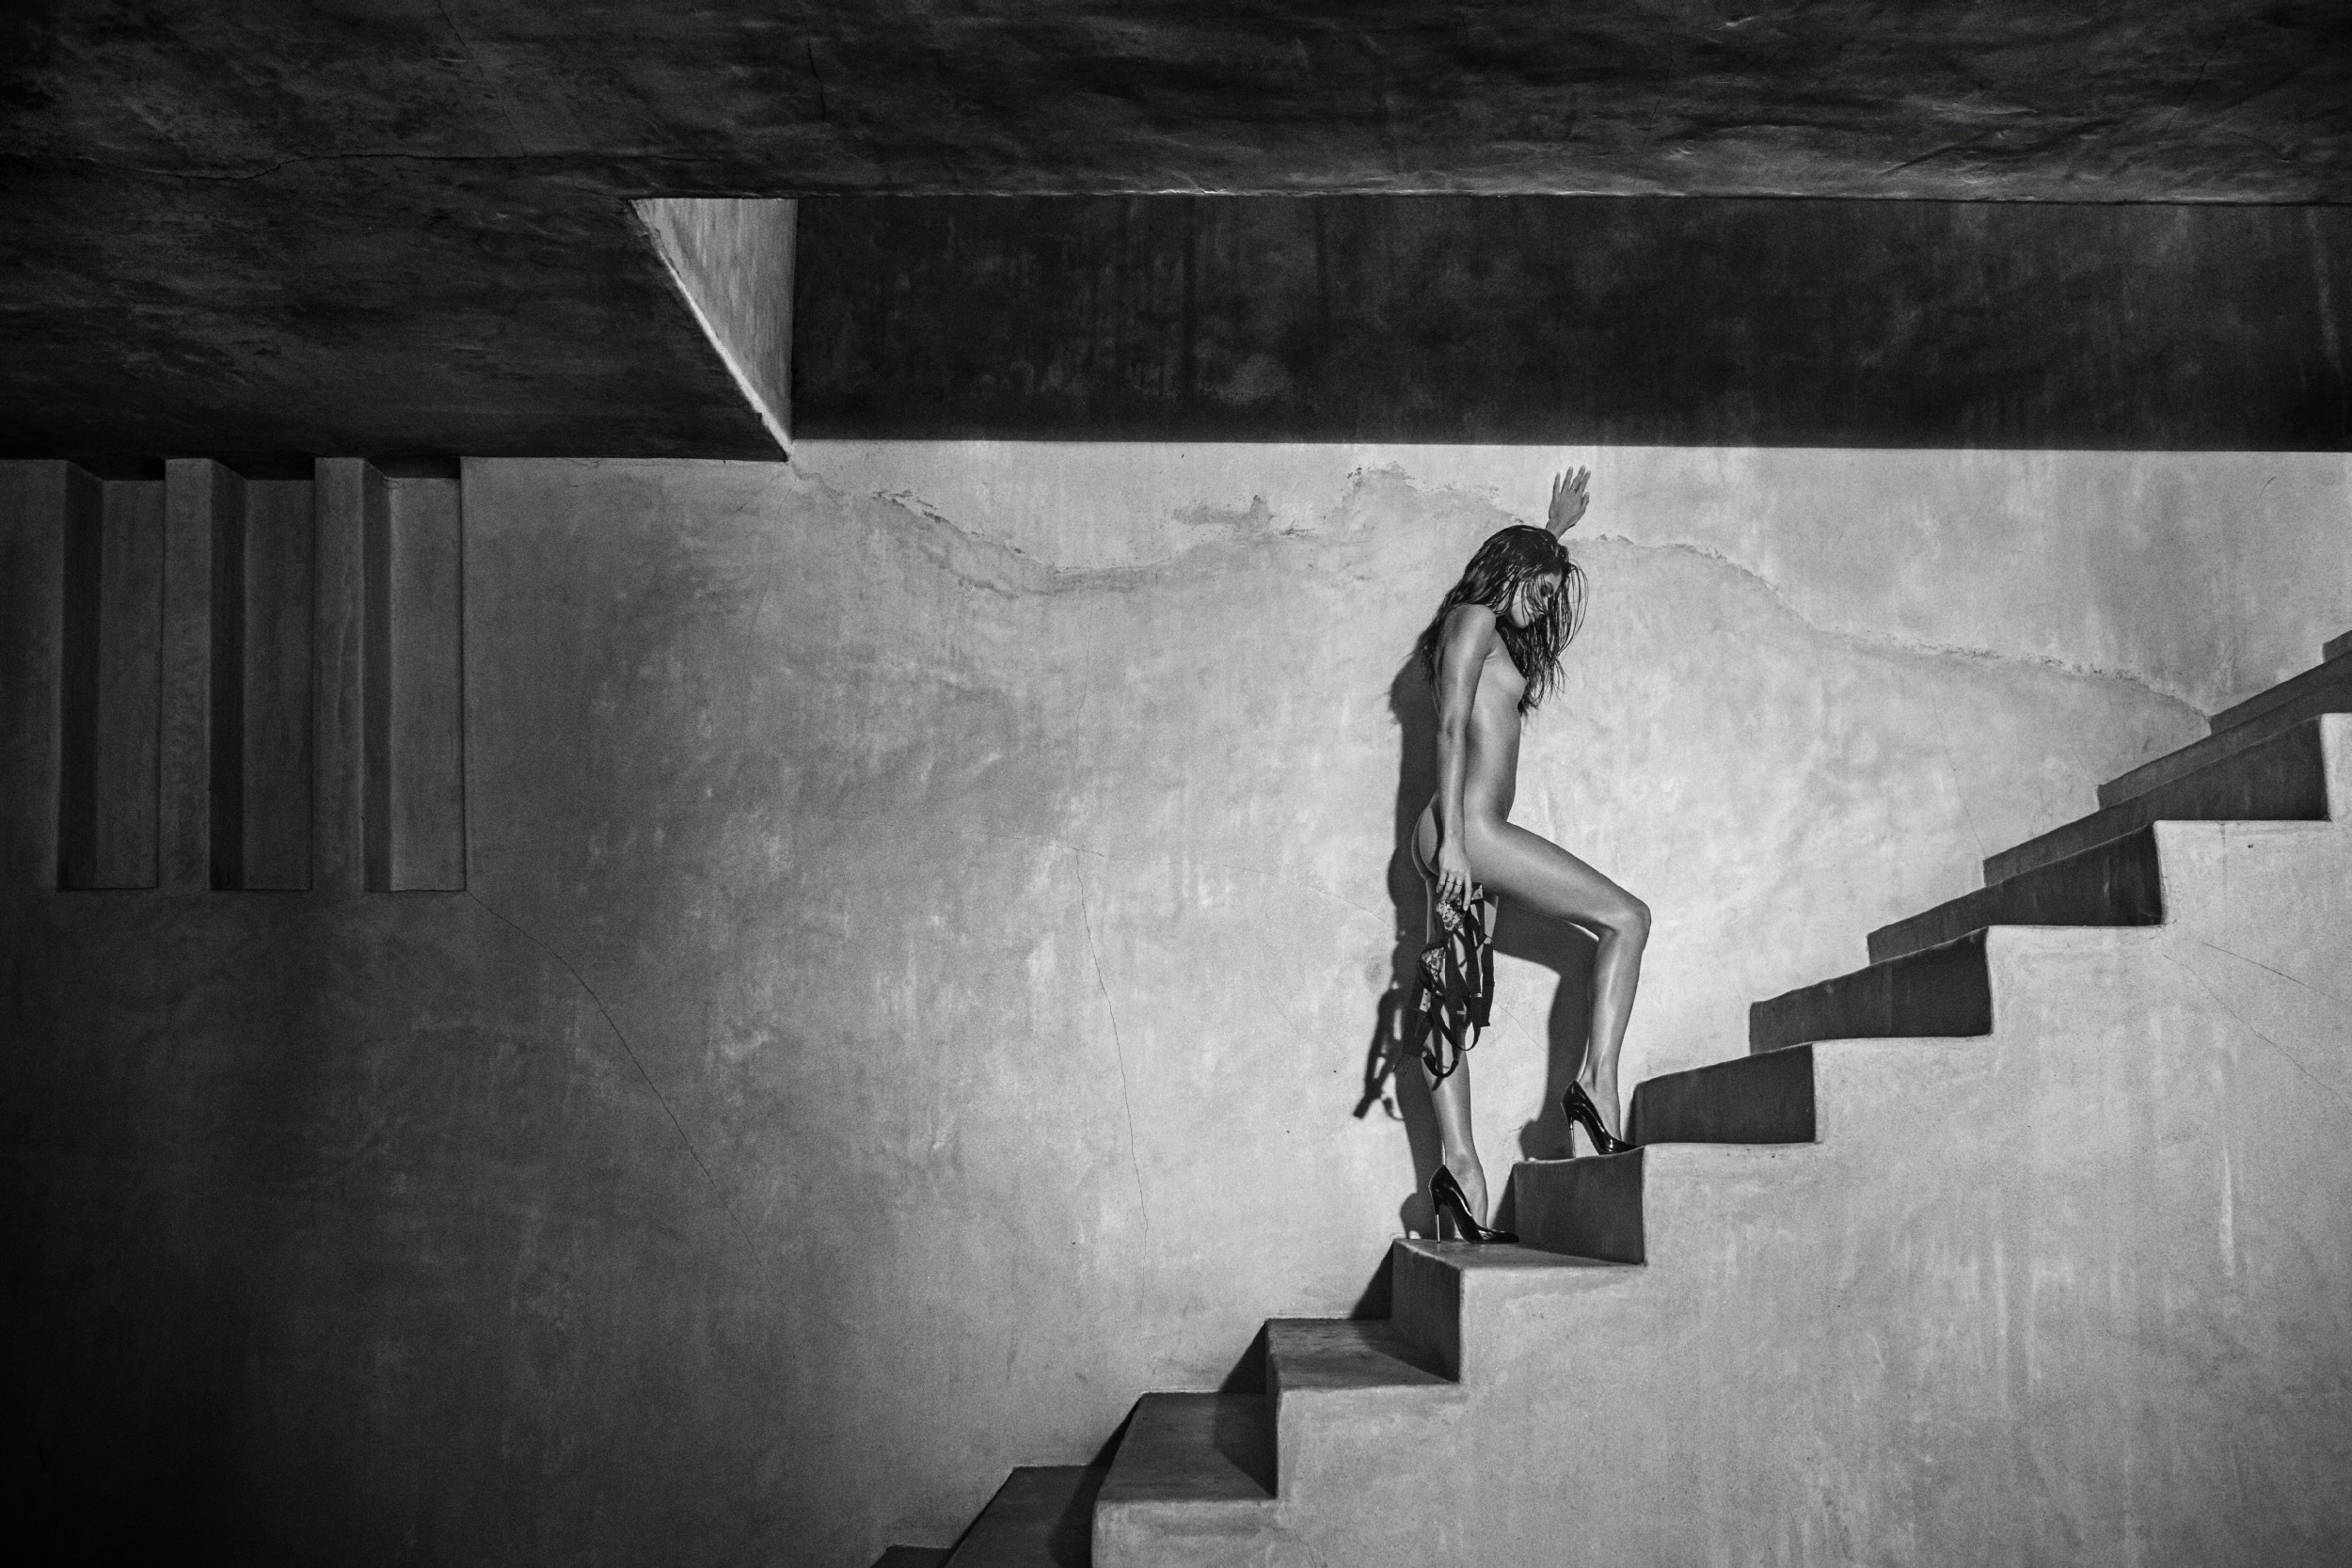 Sara Morocco Staircase by Russell James